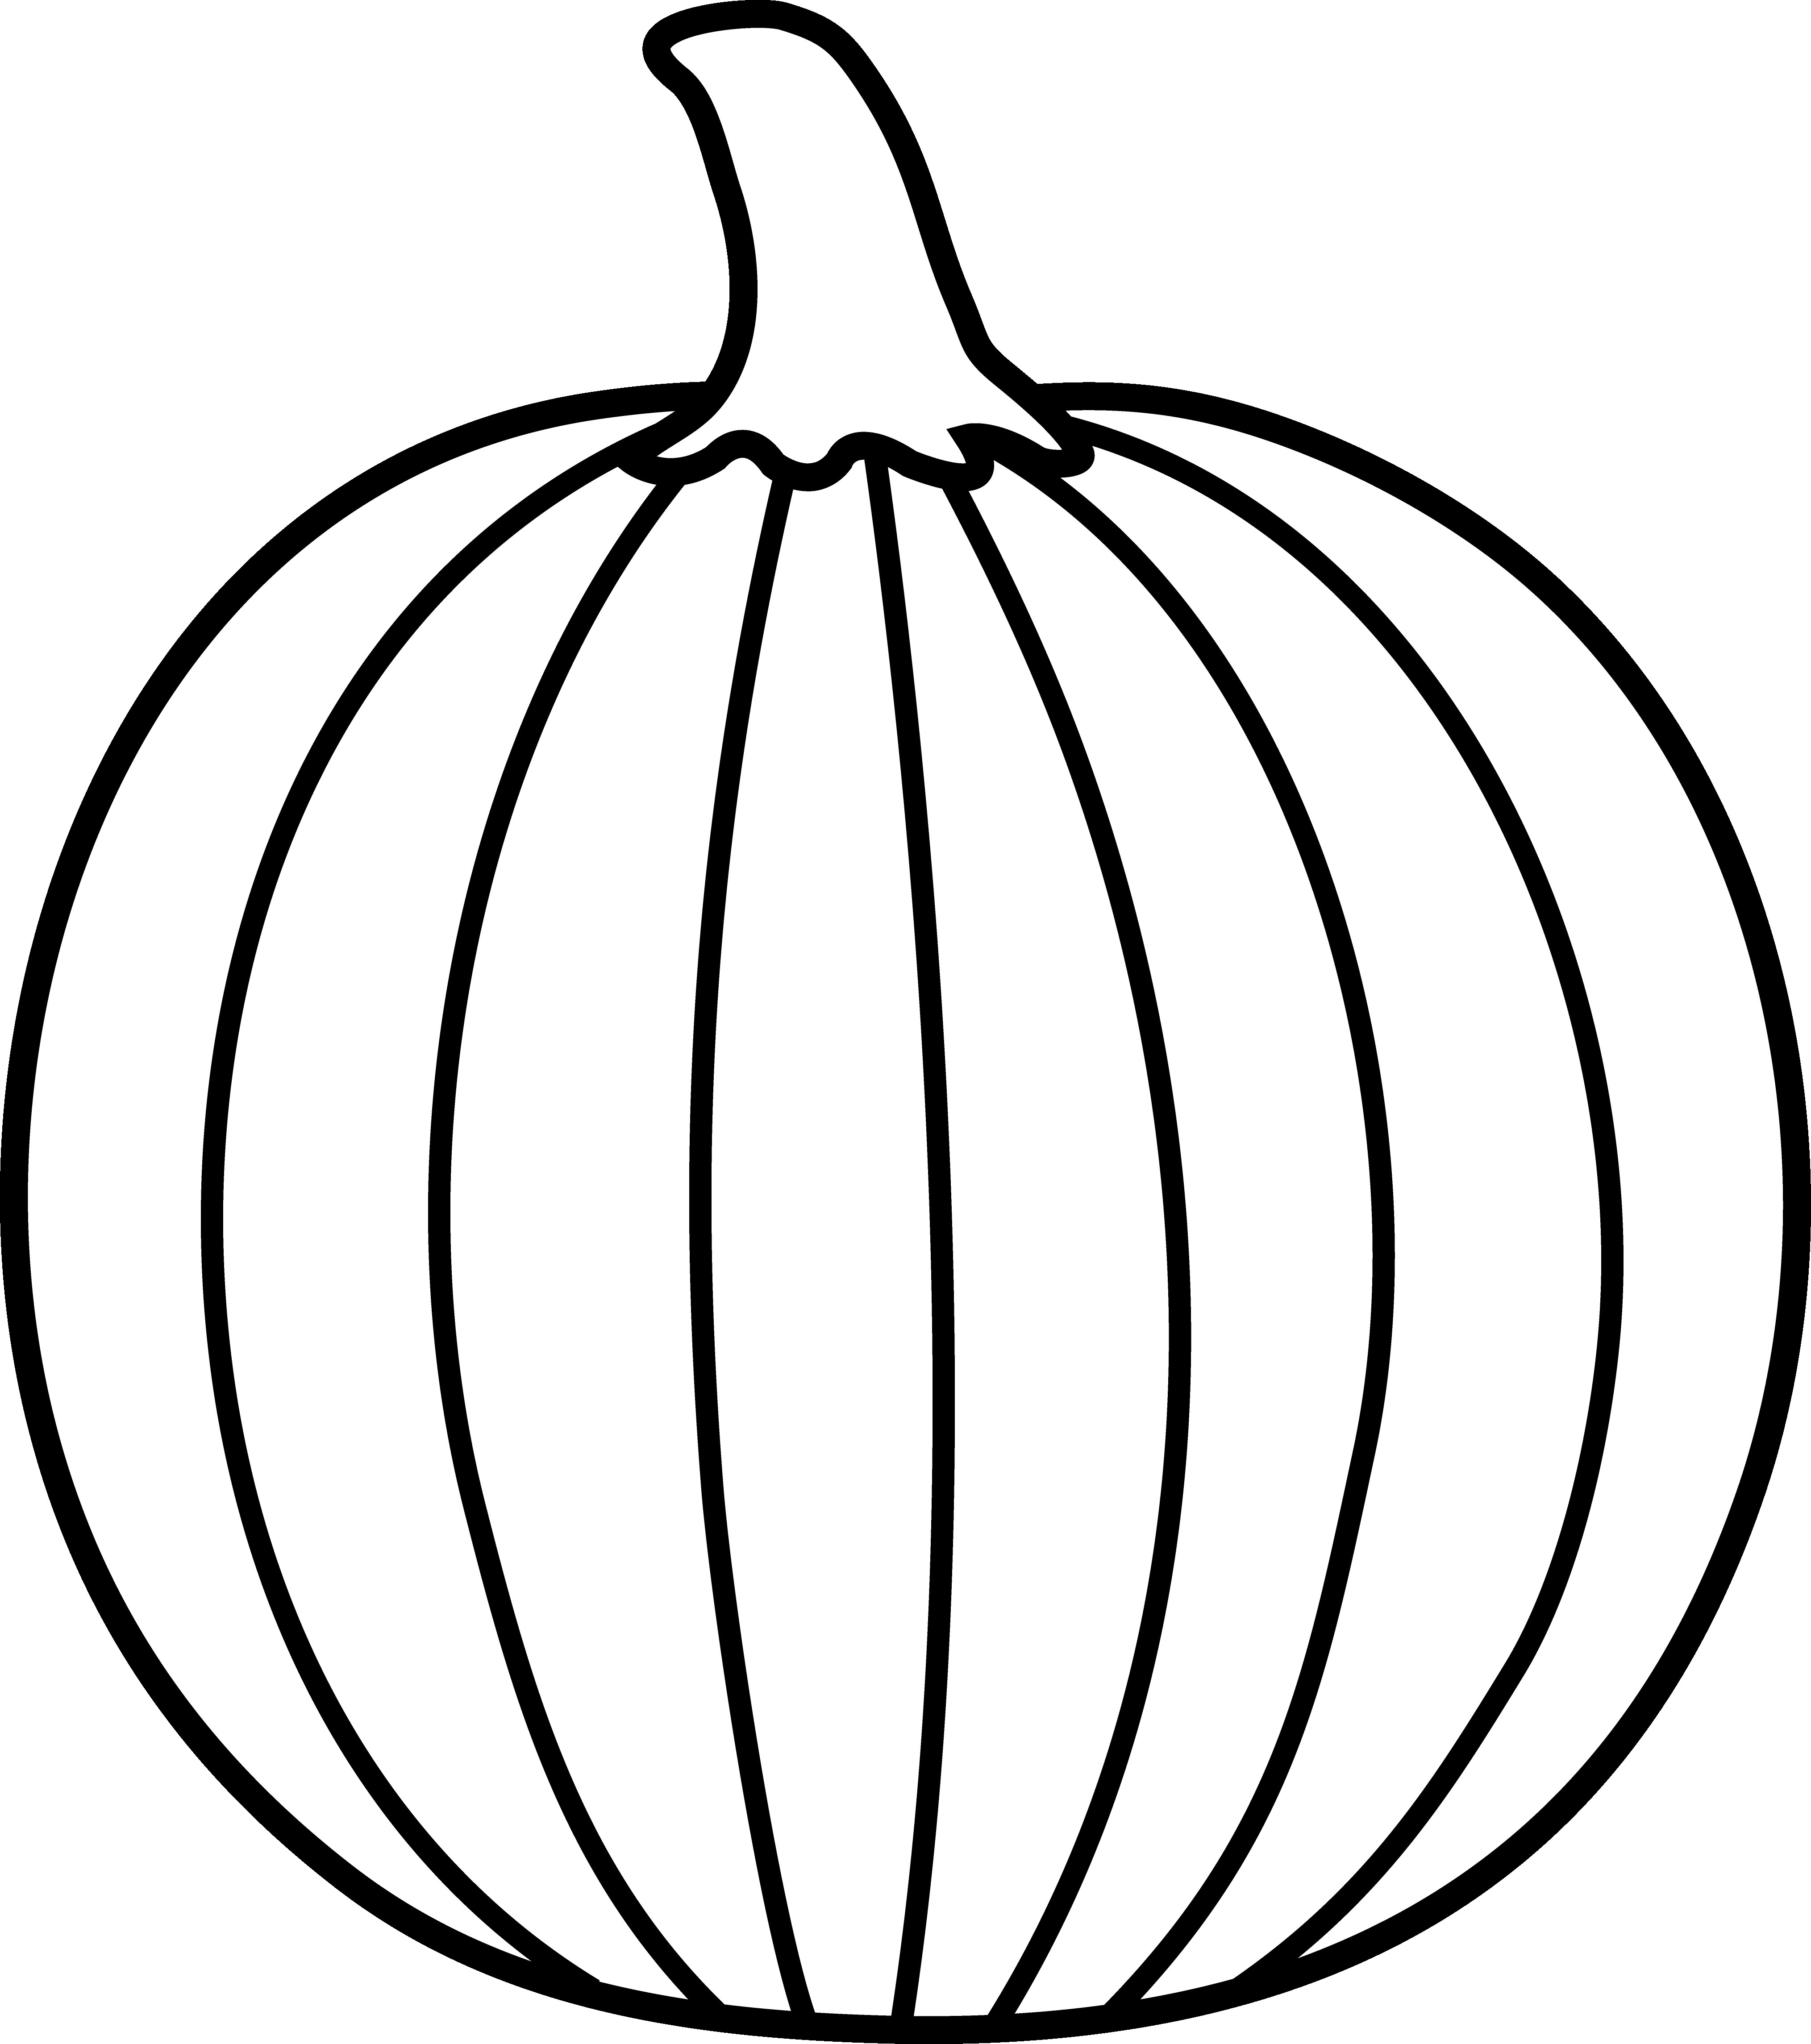 4057x4580 Pumpkins With Leaves Black Silhouette On White Background Vector